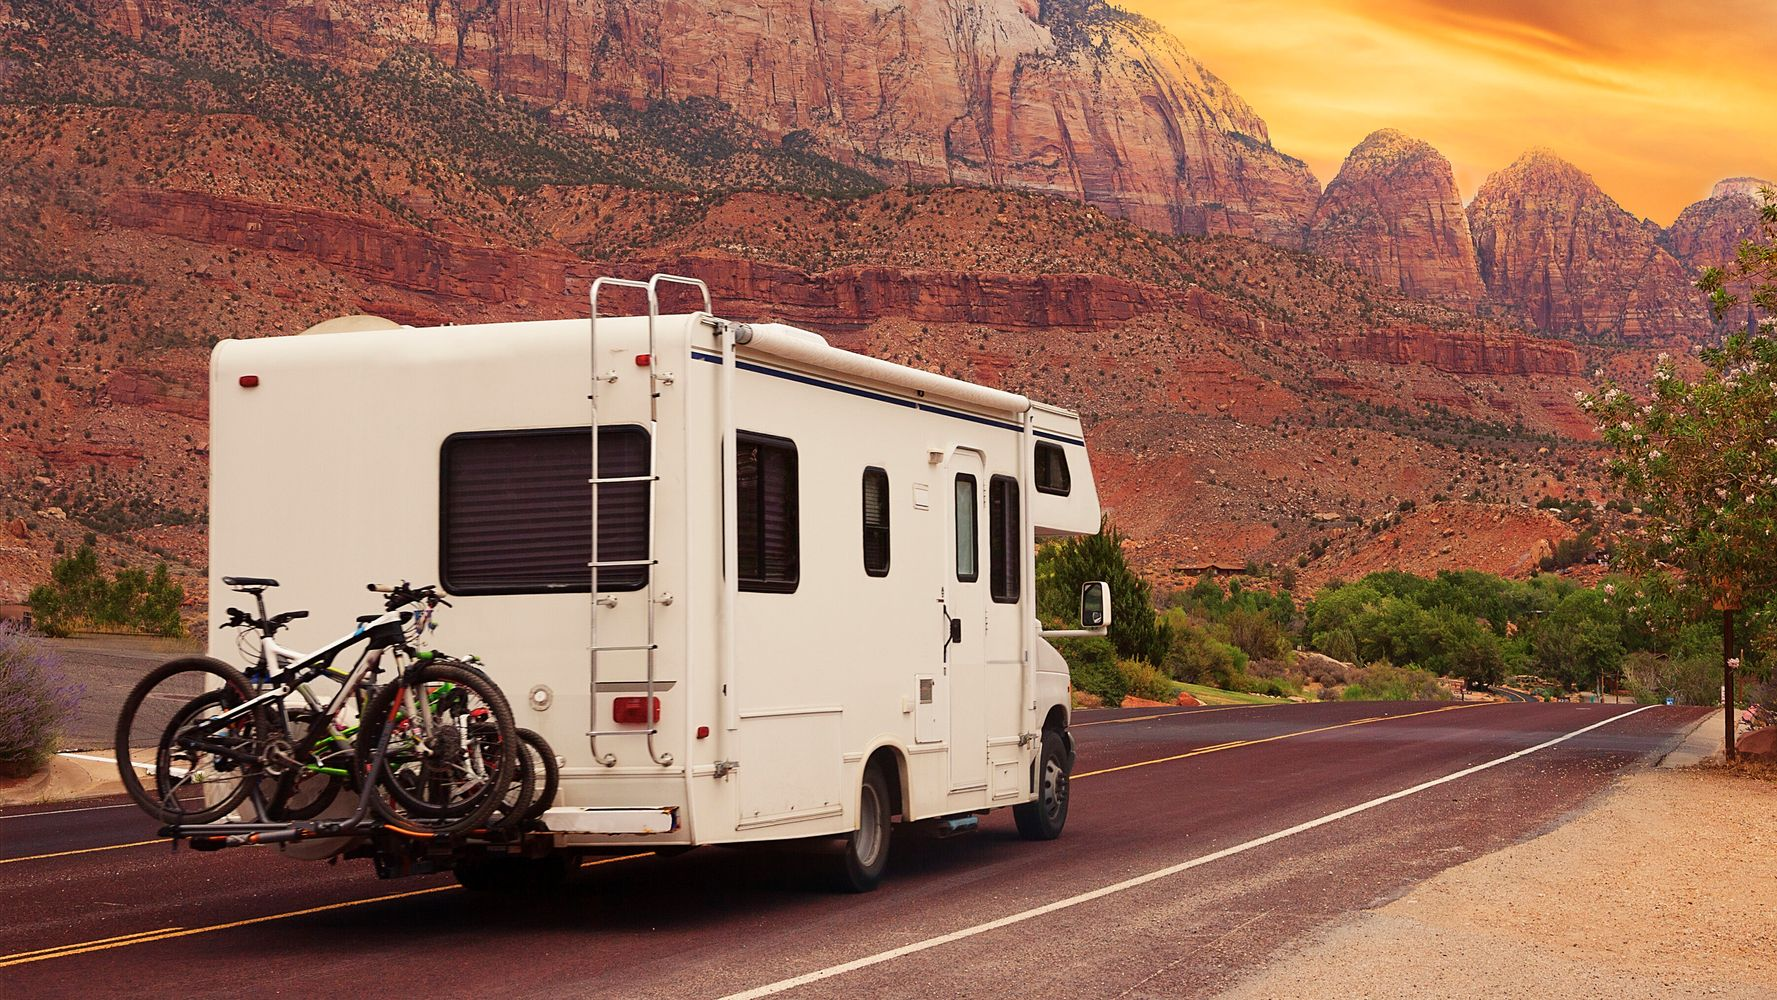 Renting Or Buying An RV This Summer? These 16 Tips Will Keep You Safe And Sane.